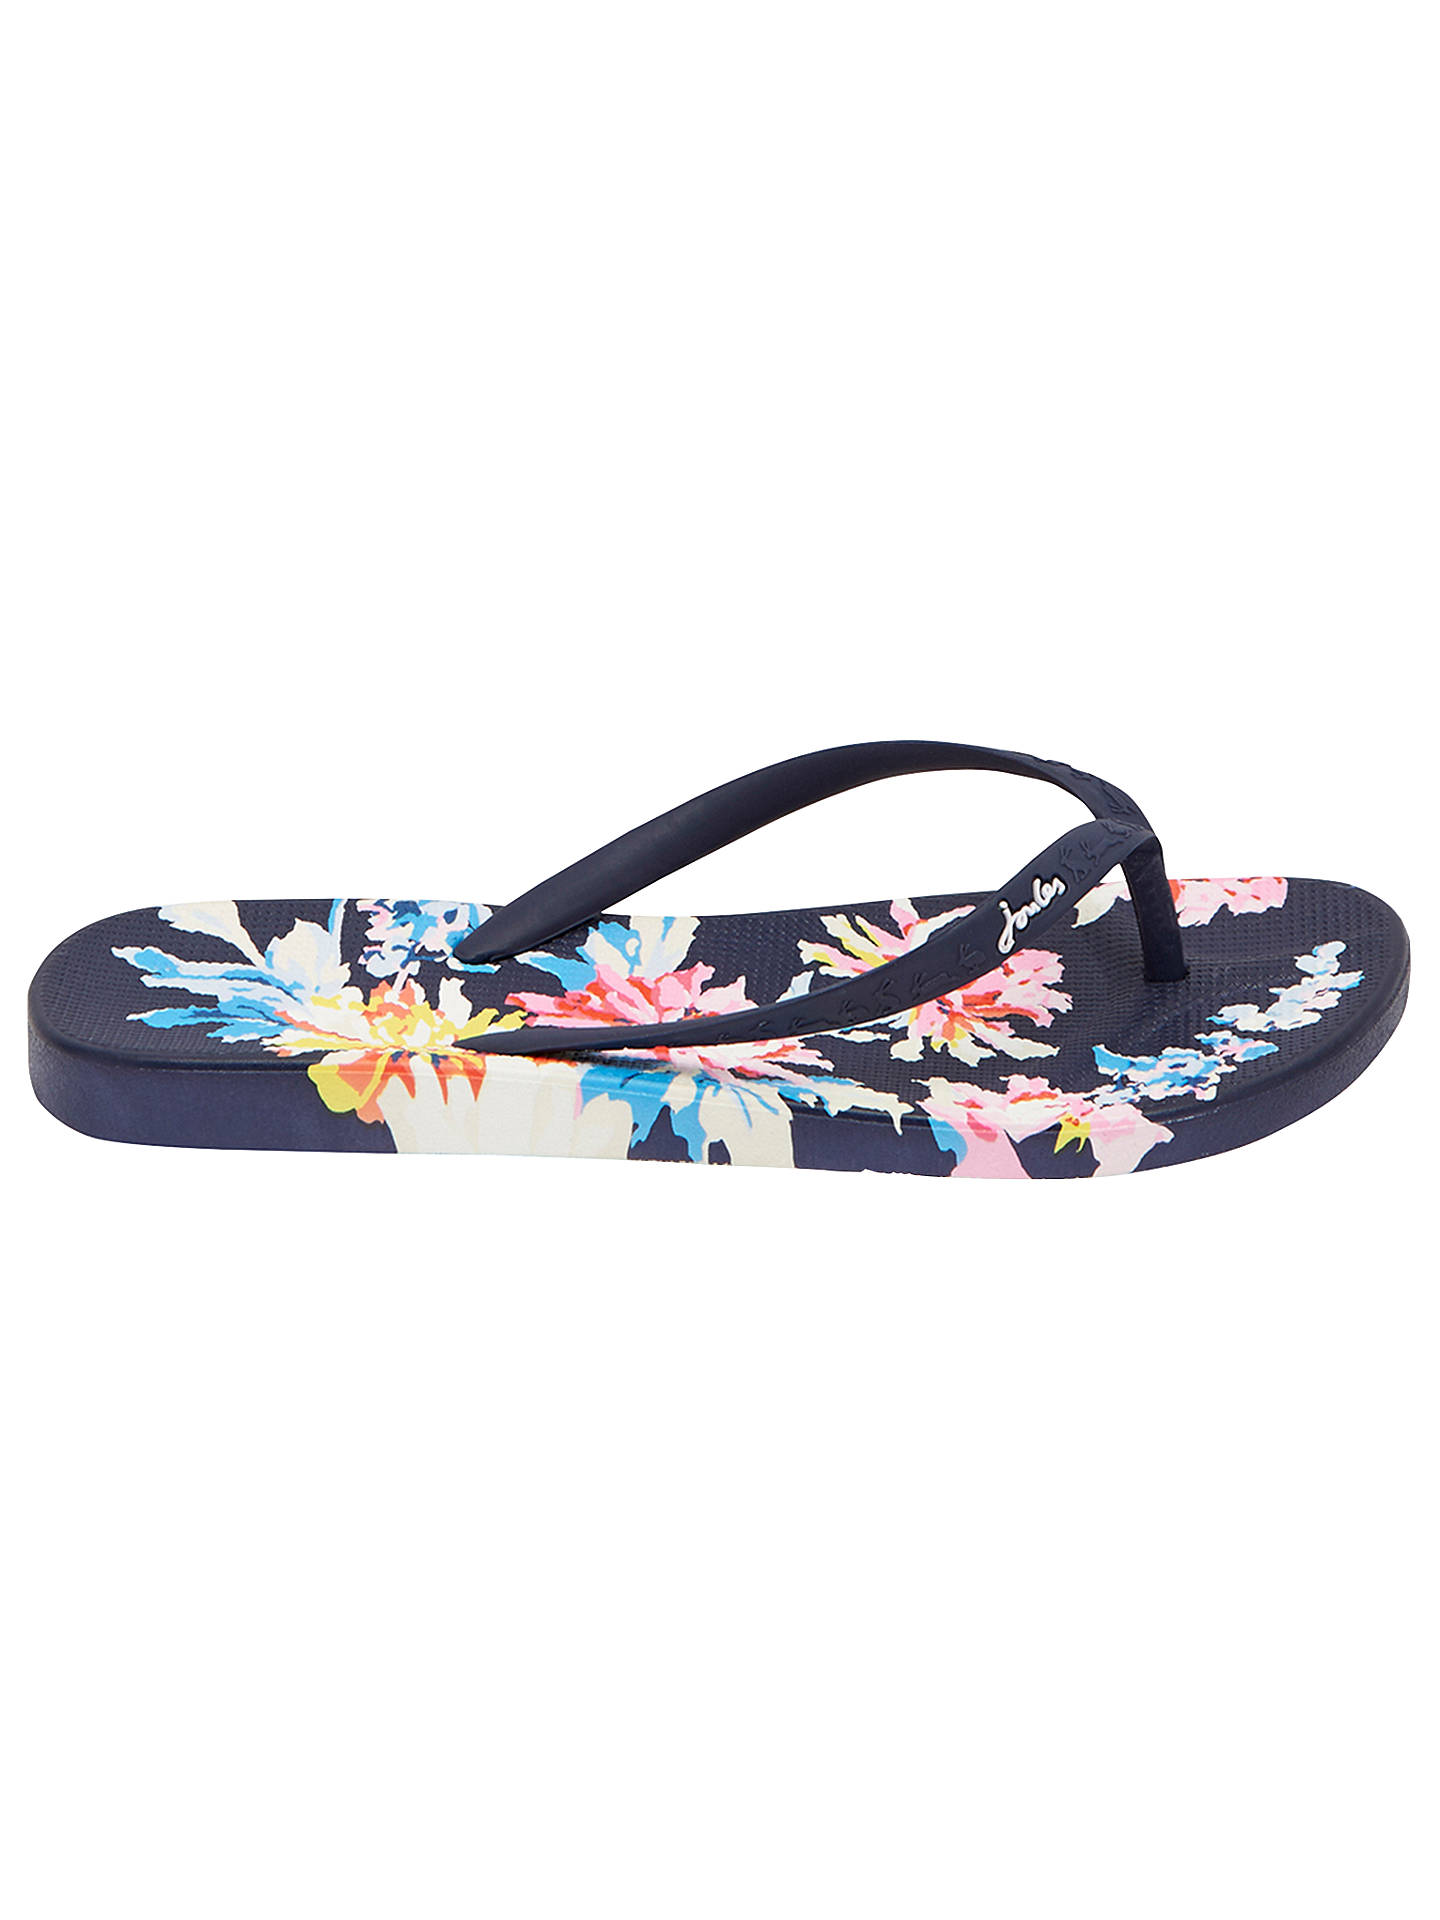 available new & pre-owned designer full range of specifications Joules Whitstable Floral Flip Flops, Navy at John Lewis ...